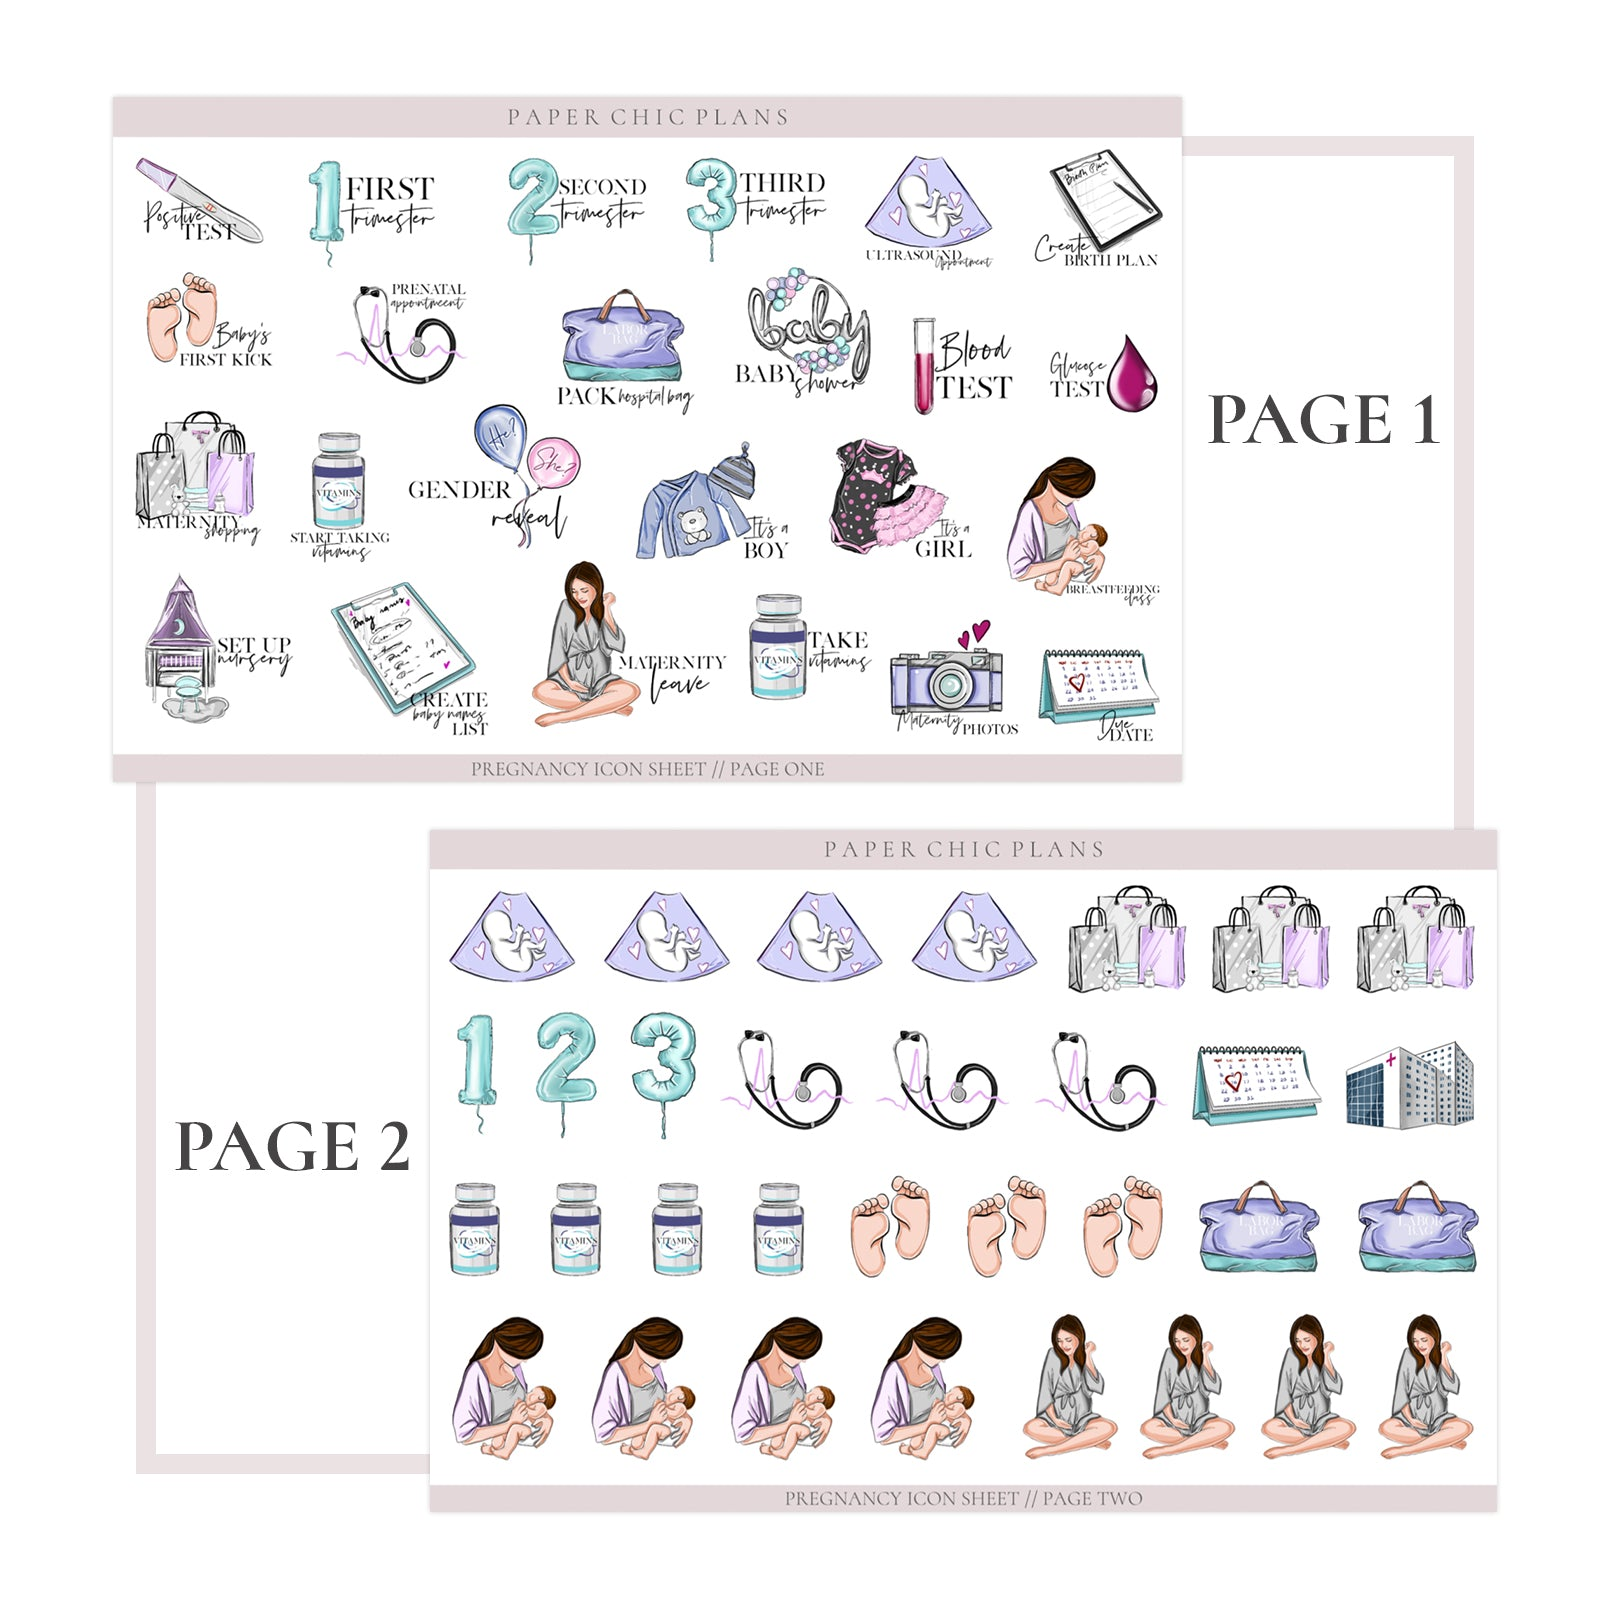 PREGNANCY // Planner Icons - Paper Chic Plans